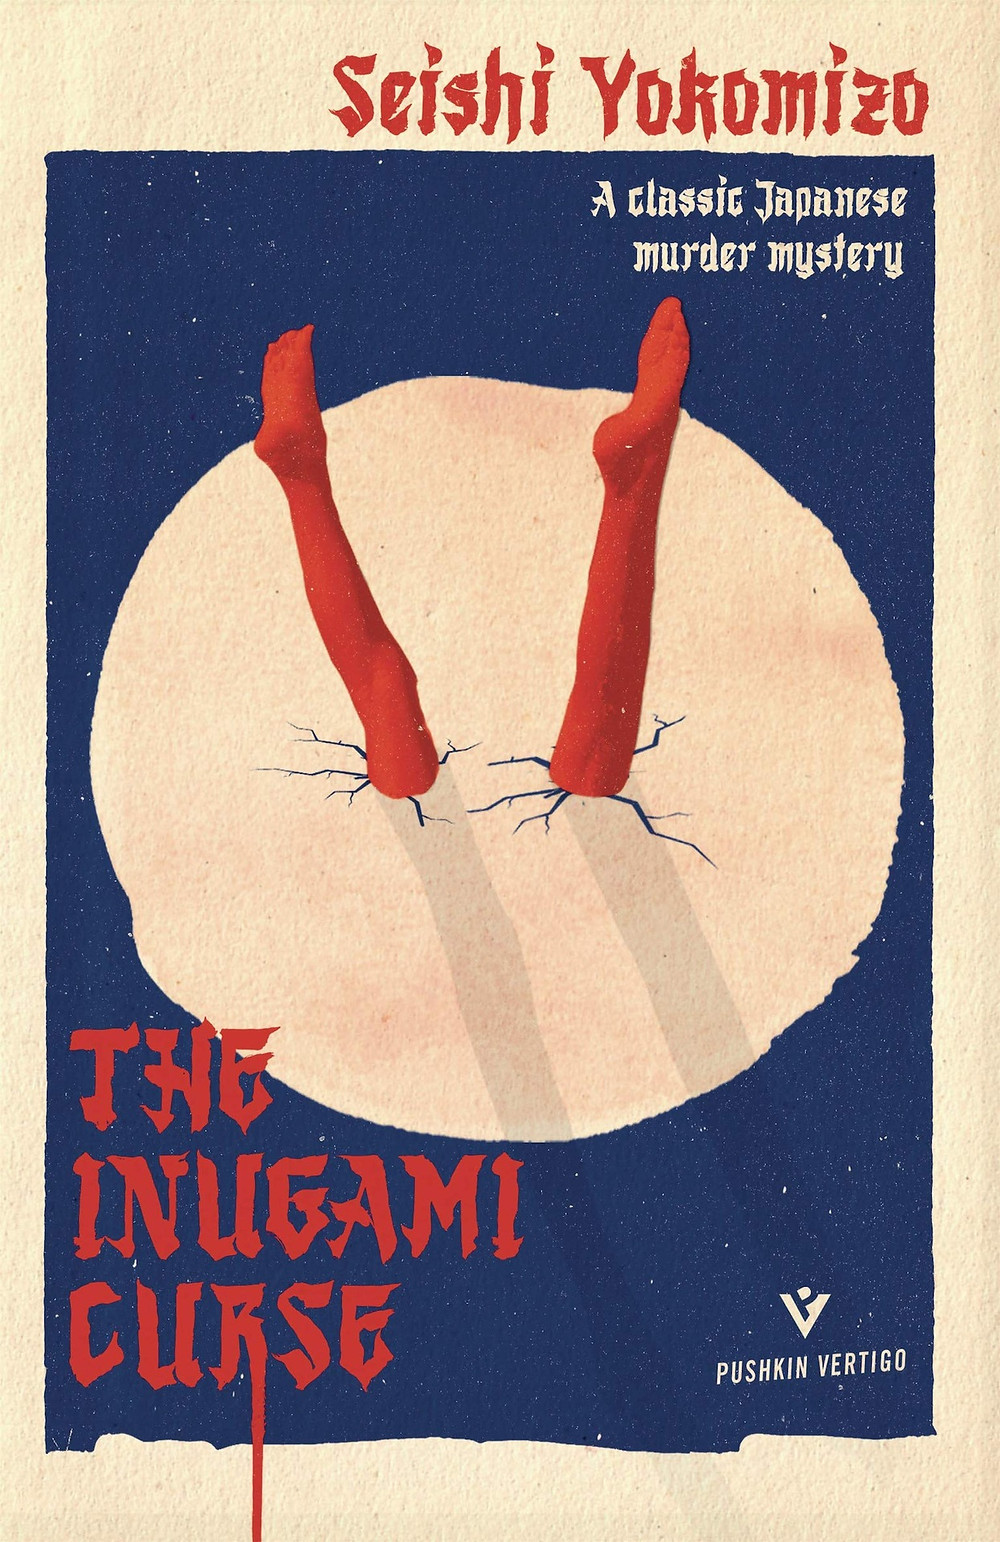 The Inugami Curse by Seishi Yokomizo (Author)  Yumiko Yamakazi (Translator) FORMAT Paperback PRE-ORDER  AUG 25, 2020 Description: A fiendish classic murder mystery, from one of Japan's greatest crime writers, featuring the country's best-loved detective In 1940s Japan, the wealthy head of the Inugami clan dies, and his family eagerly await the reading of the will. But no sooner are its strange details revealed than a series of bizarre, gruesome murders begins. Detective Kindaichi must unravel the clan's terrible secrets of forbidden liaisons, monstrous cruelty, and hidden identities to find the murderer, and lift the curse wreaking its bloody revenge on the Inugamis. The Inugami Curse is a fiendish, intricately plotted classic mystery from a giant of Japanese crime writing, starring the legendary detective Kosuke Kindaichi. The Book Slut book reviews. Pushkin Press. Publisher Pushkin Vertigo Publish Date August 25, 2020 Pages 320 Dimensions 5.0 X 0.9 X 7.9 inches | 0.52 pounds Language English Type Paperback EAN/UPC 9781782275039 BISAC Categories: Thrillers - Crime Mystery & Detective - Amateur Sleuth Crime